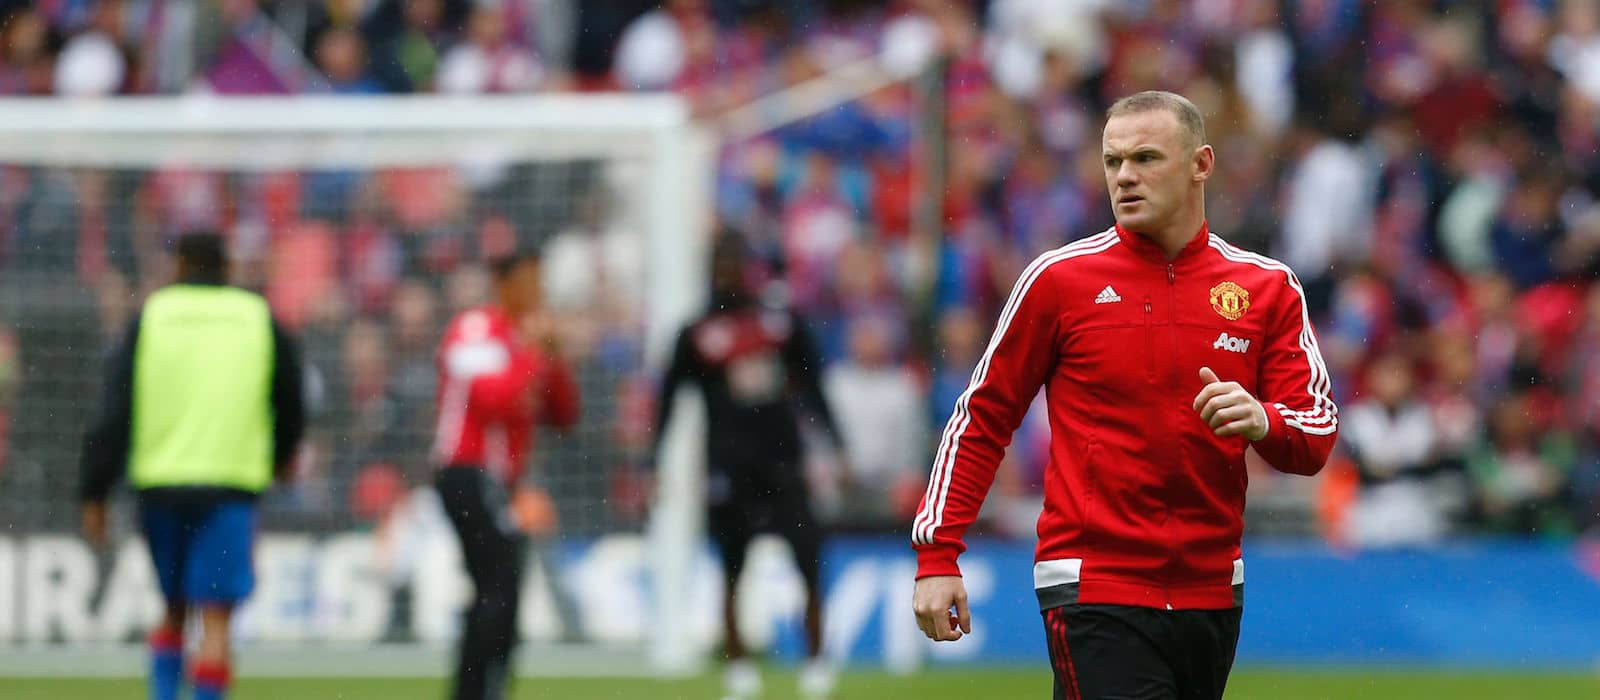 Manchester United delighted with Jose Mourinho's decision to exclude Wayne Rooney